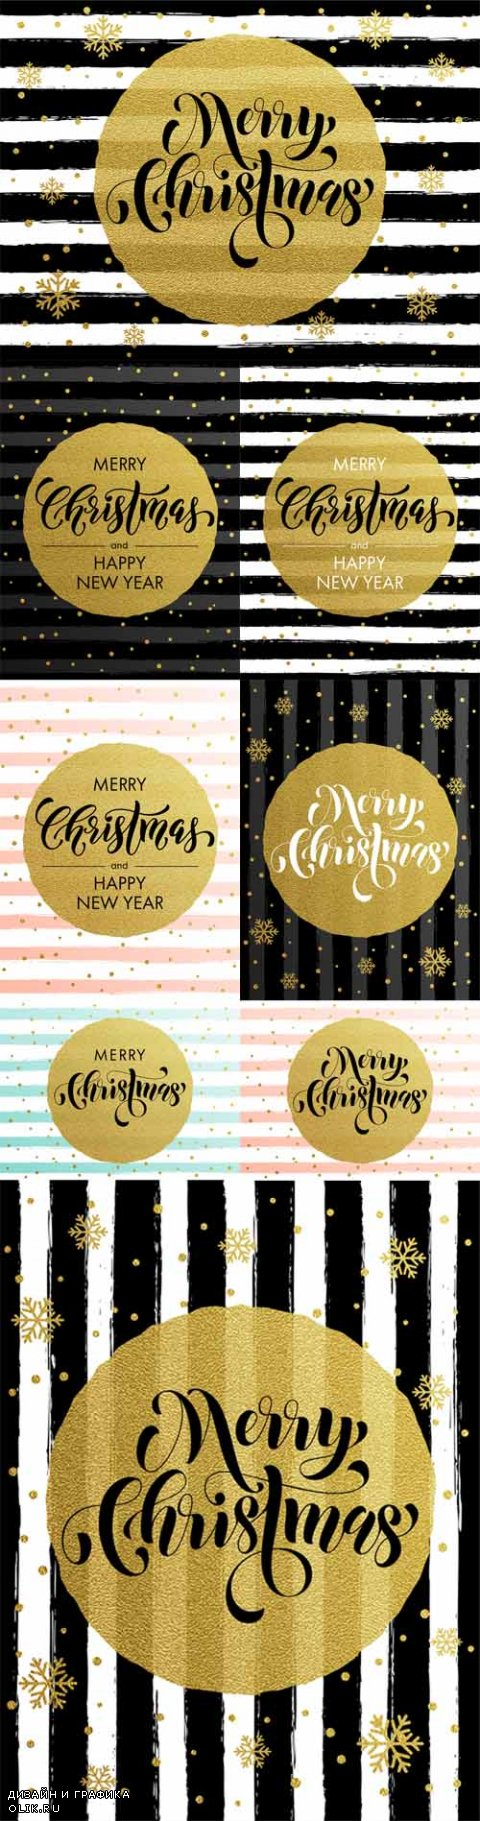 Vector Merry Christmas Gold Glitter Gilding Greeting Card